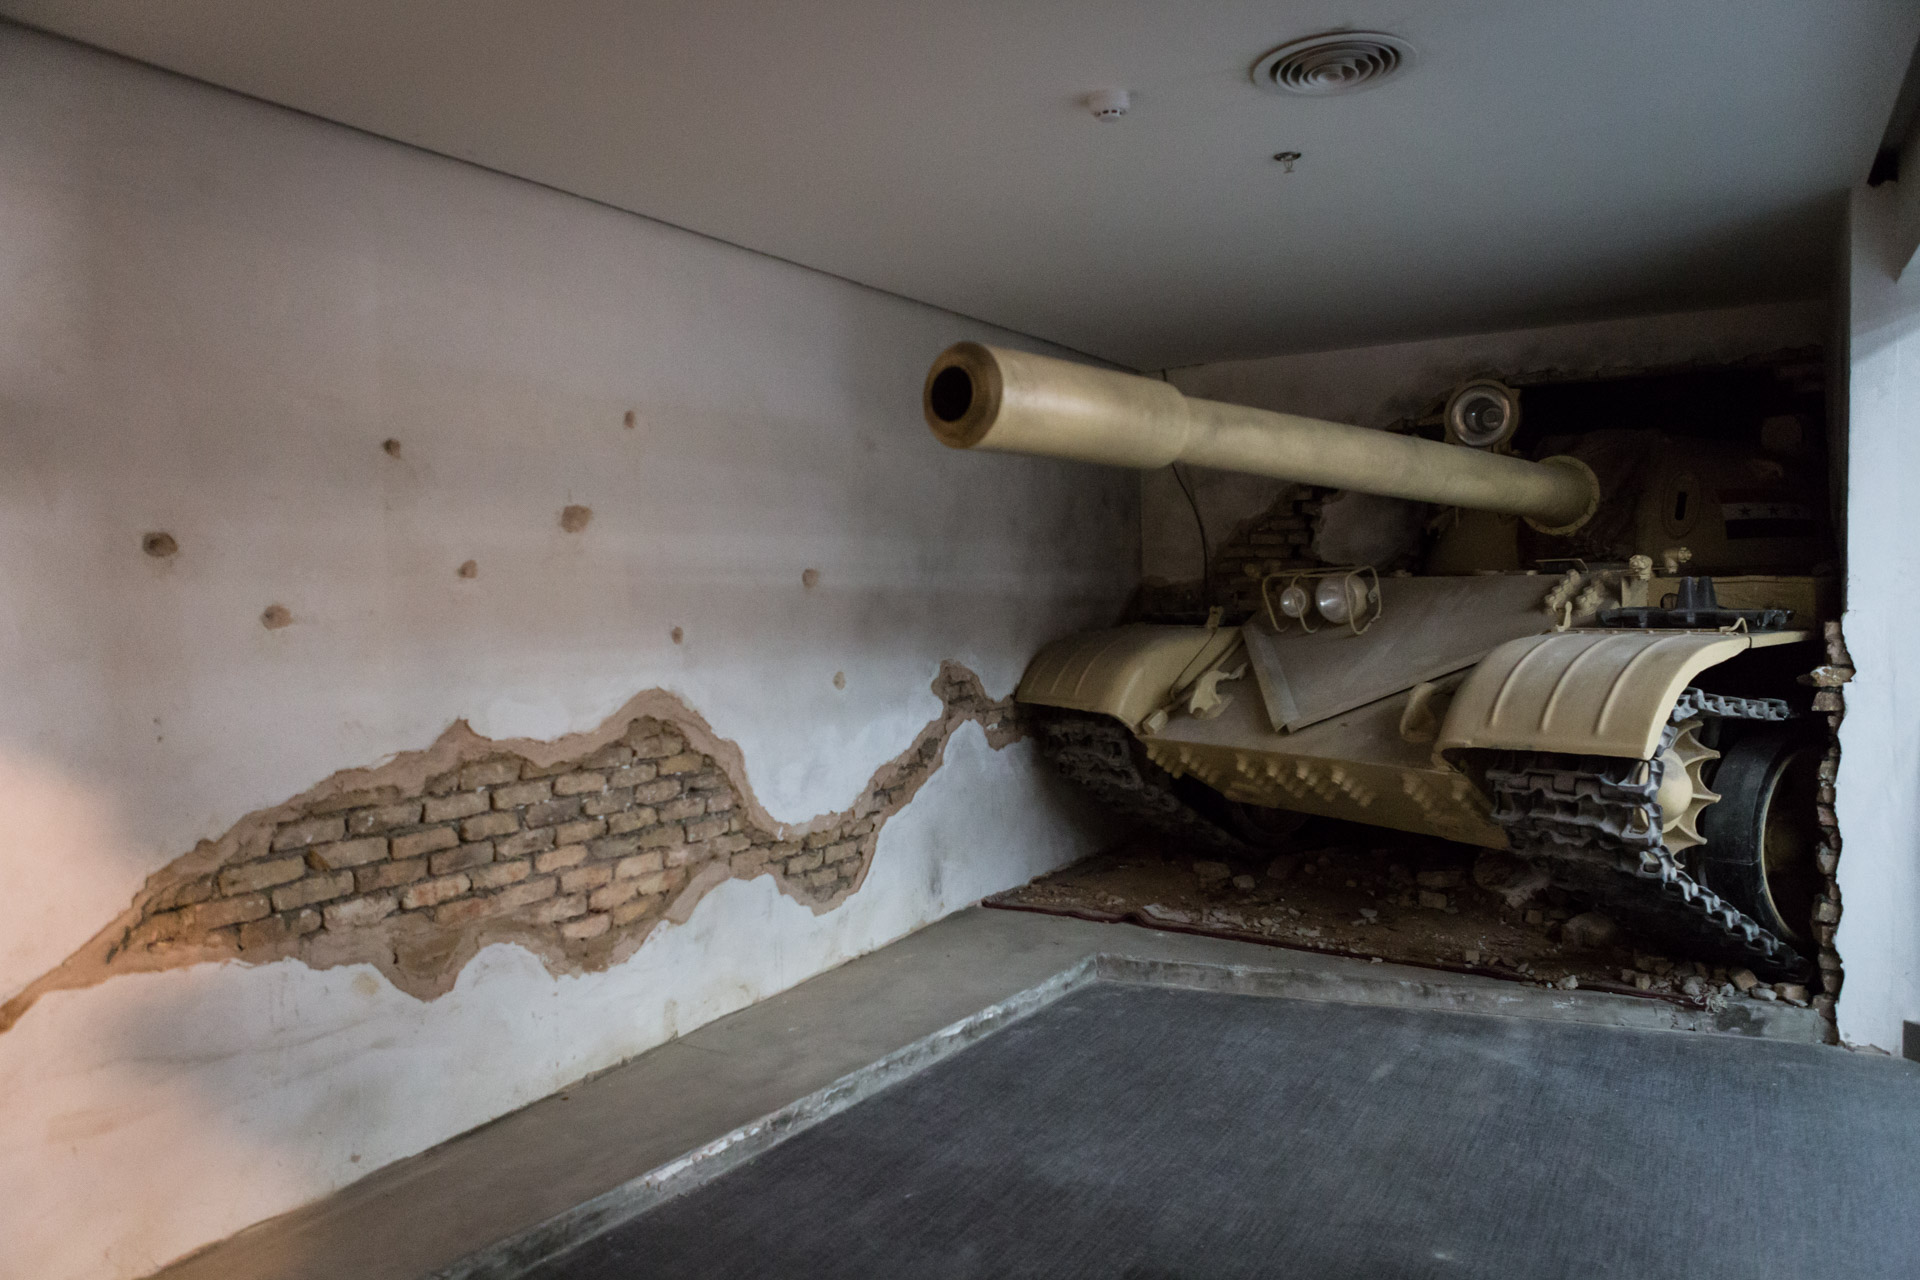 The front of a tank is breaking through a wall.